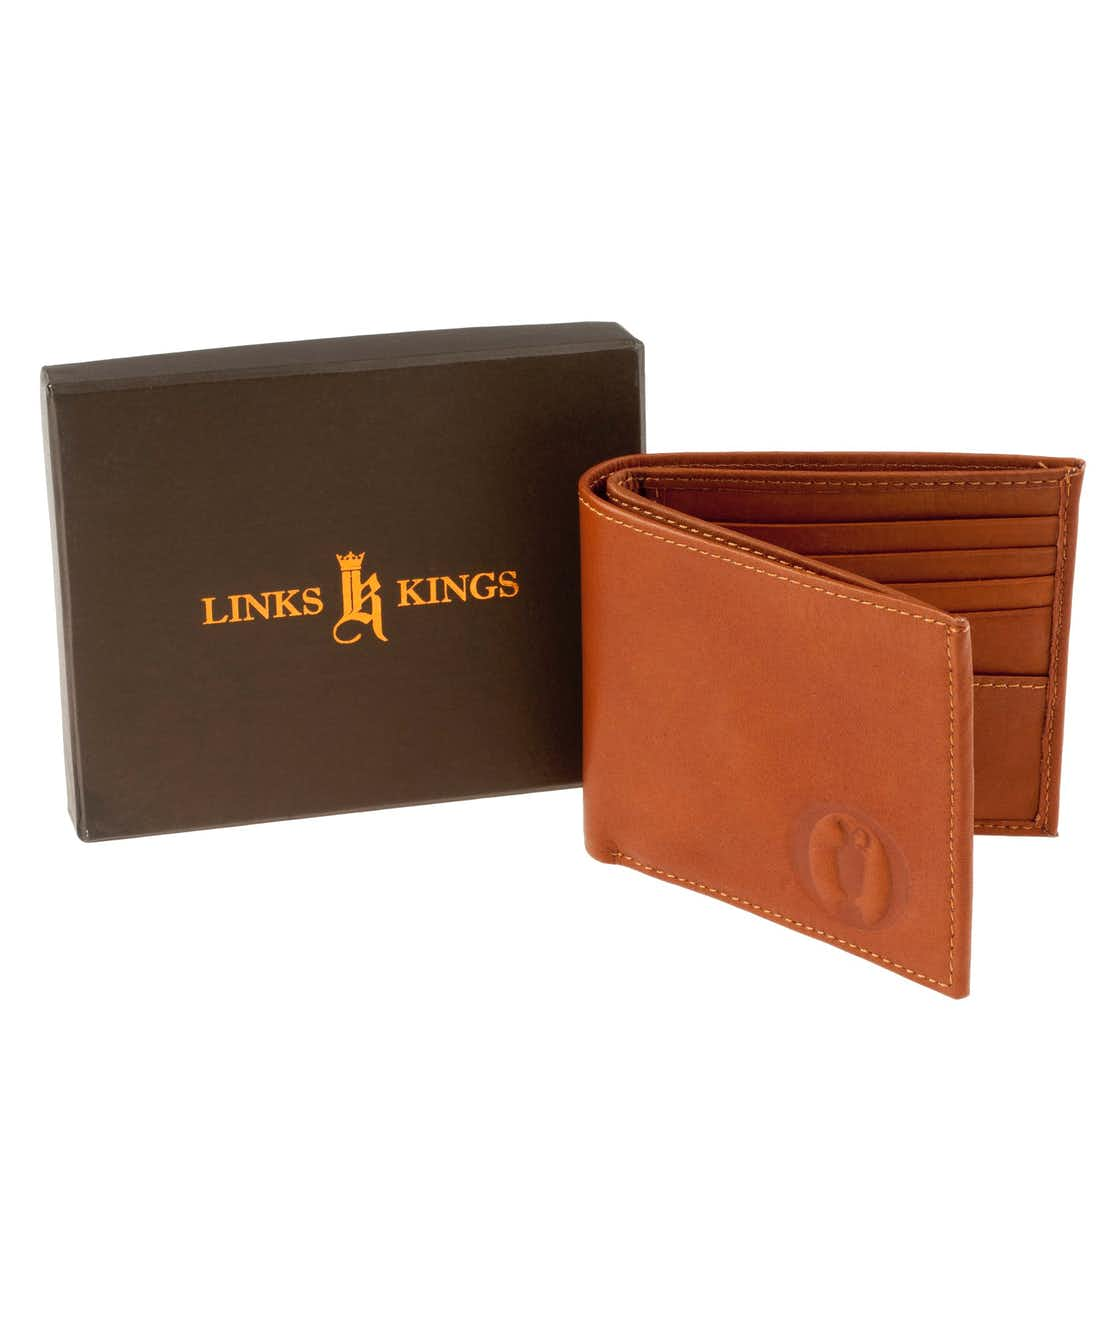 The Open Links & Kings Classic Folding Wallet - Brown